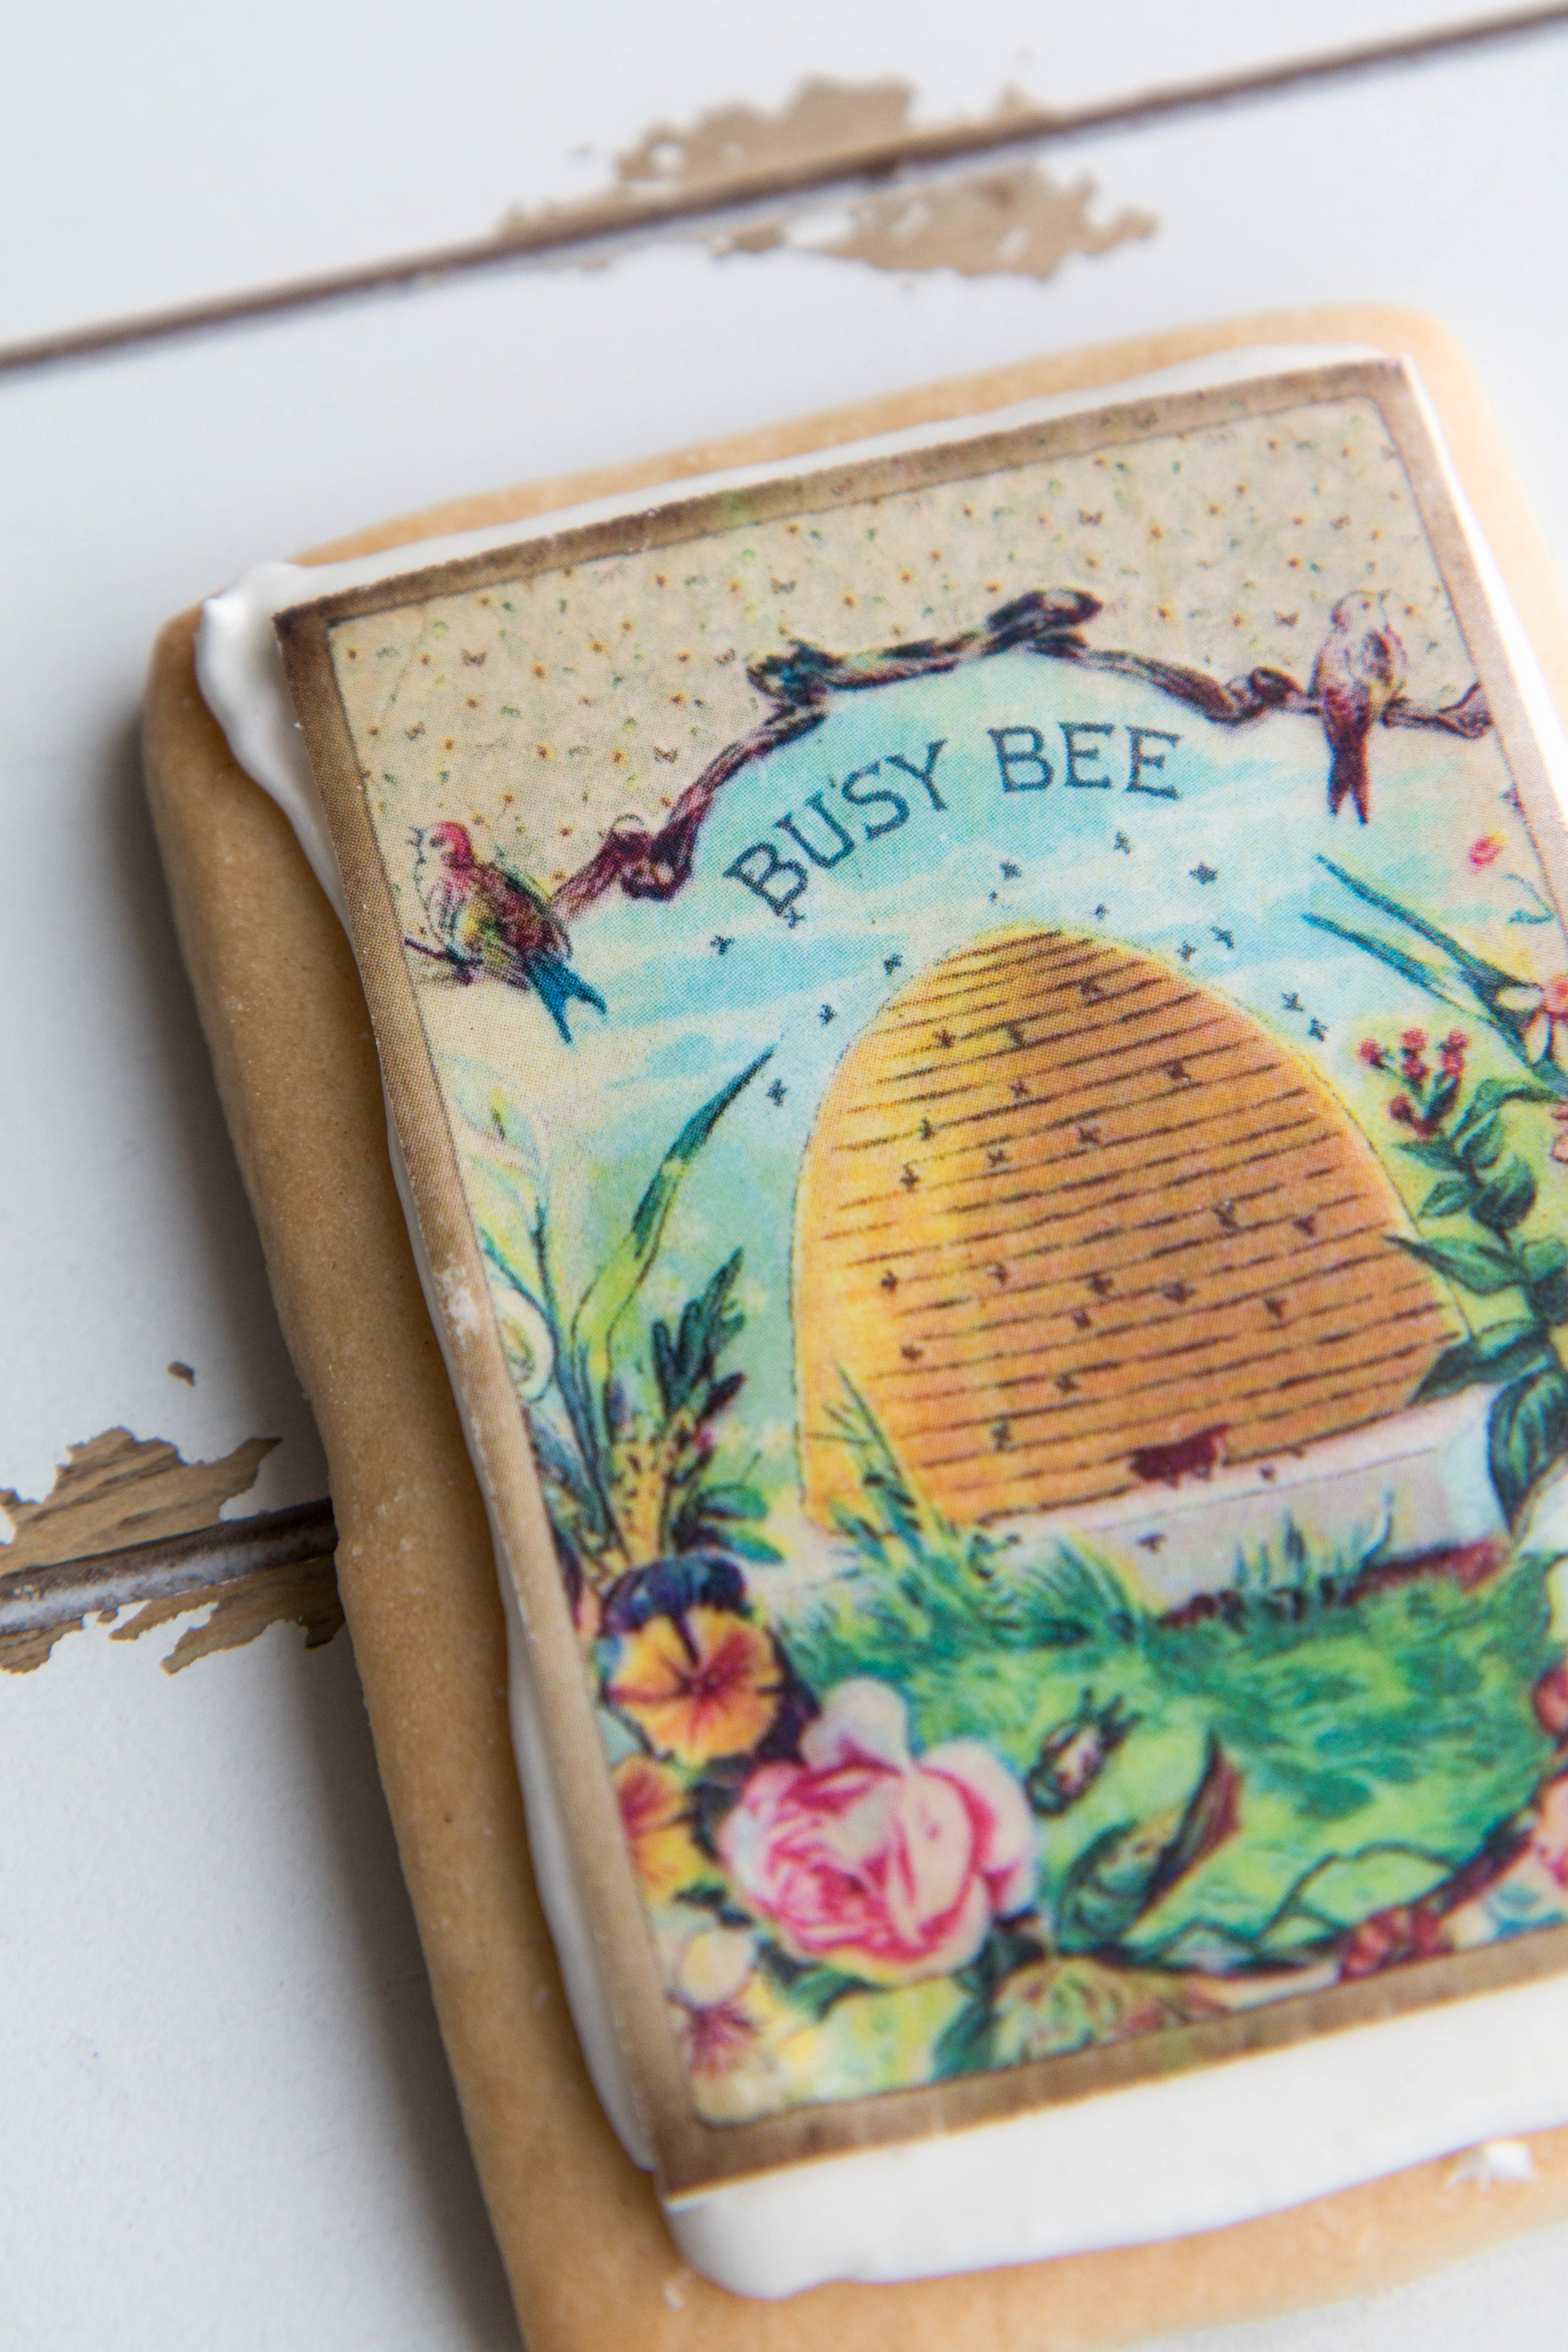 Busy bee sugar cookies with wafer paper by Fancy Flours.